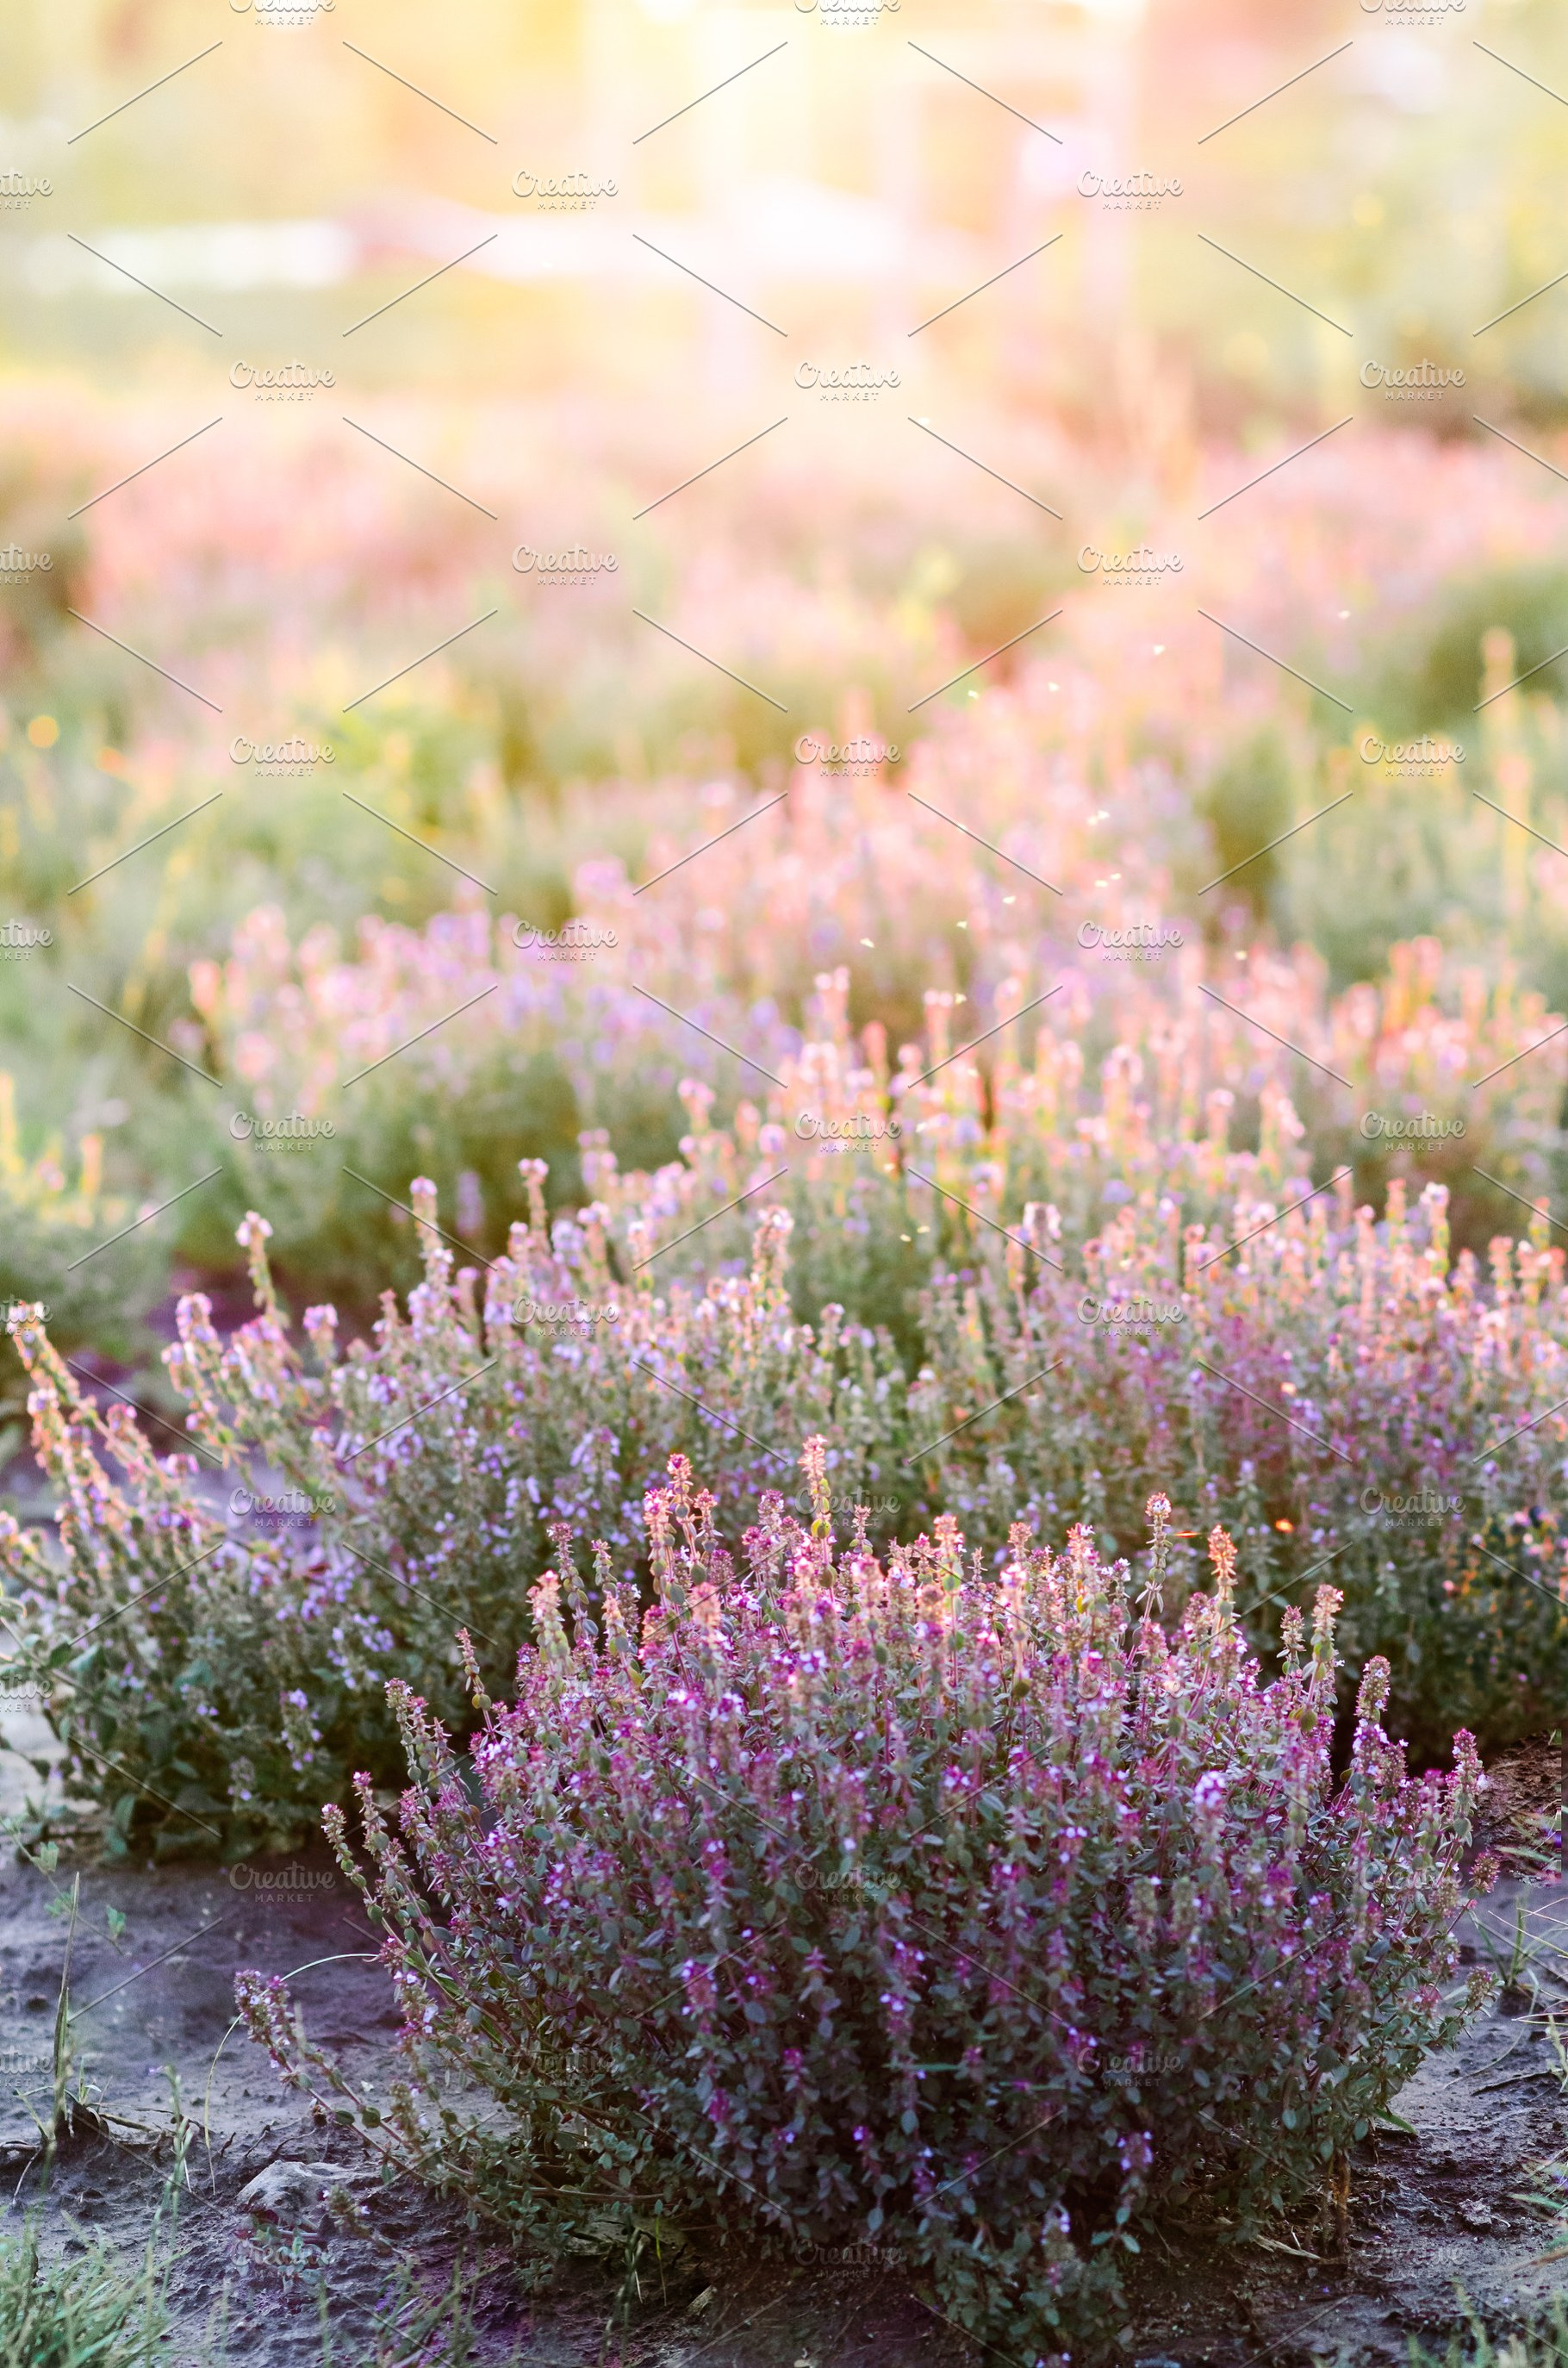 Bushes Of Purple Flowers At Sunset High Quality Nature Stock